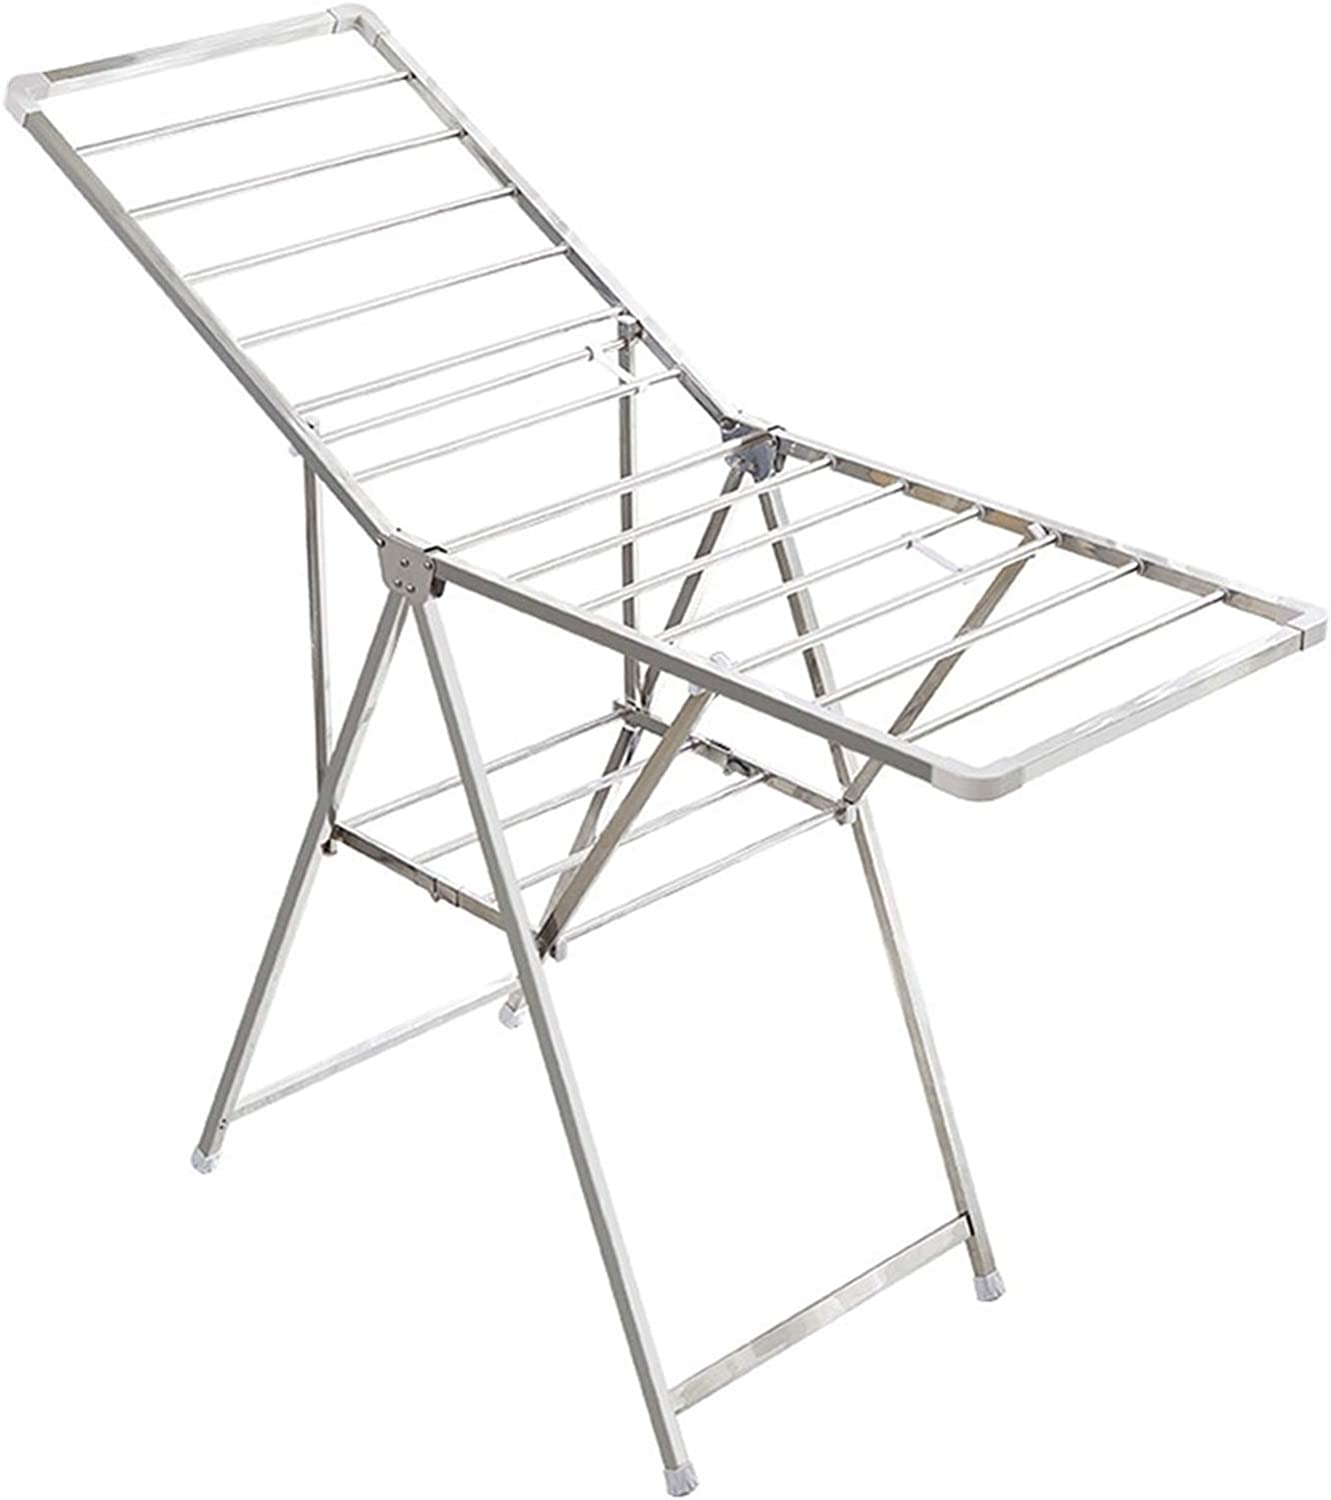 Clothes Drying Rack for OFFicial store R Laundry Stainless Max 54% OFF Steel